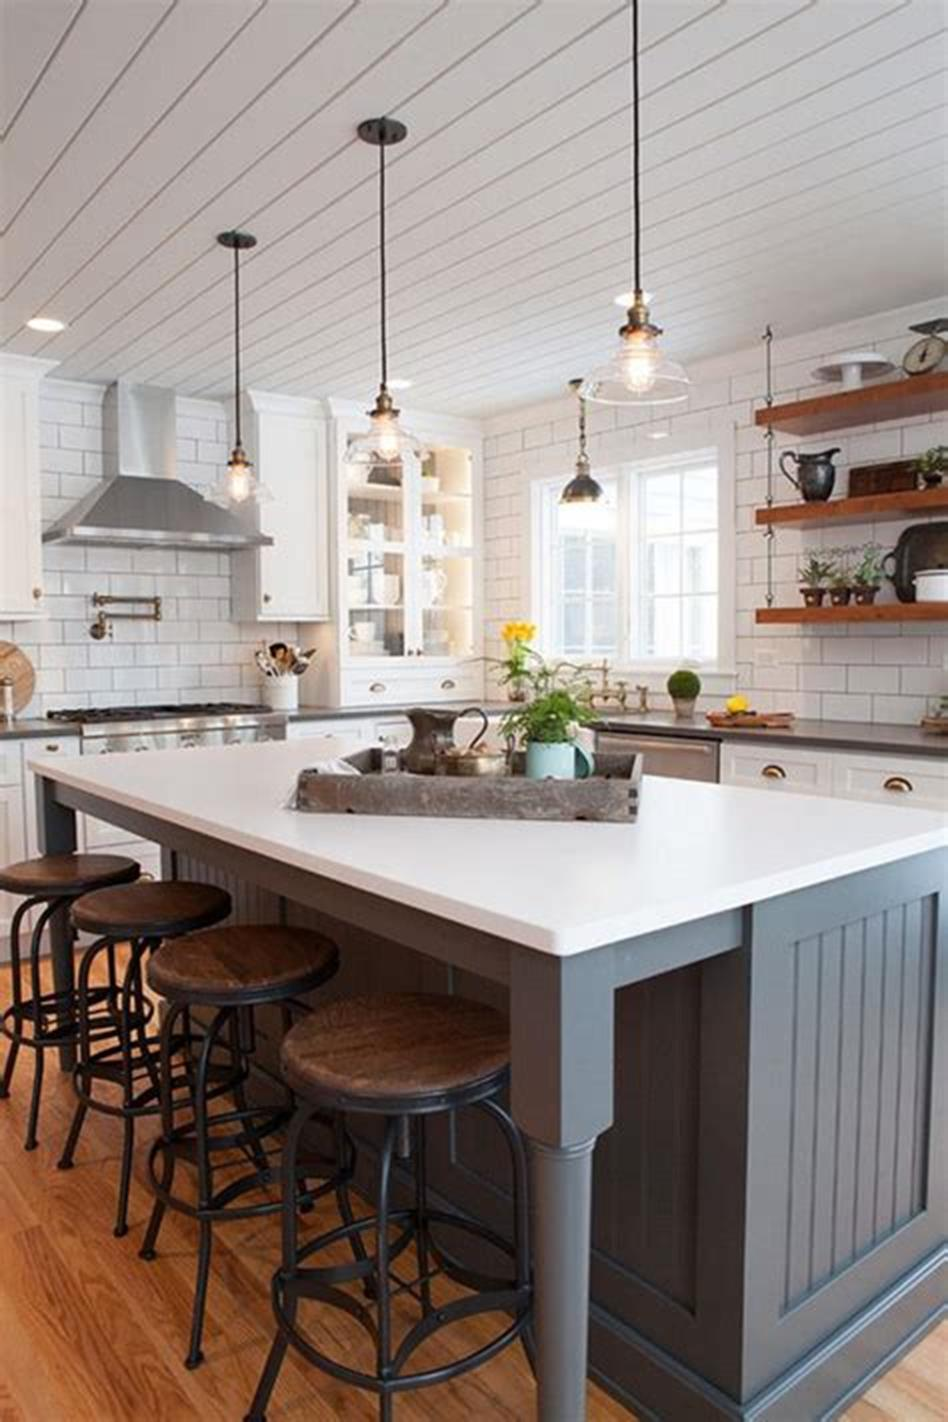 50 Inspiring Farmhouse Style Kitchen Lighting Fixtures Ideas 6